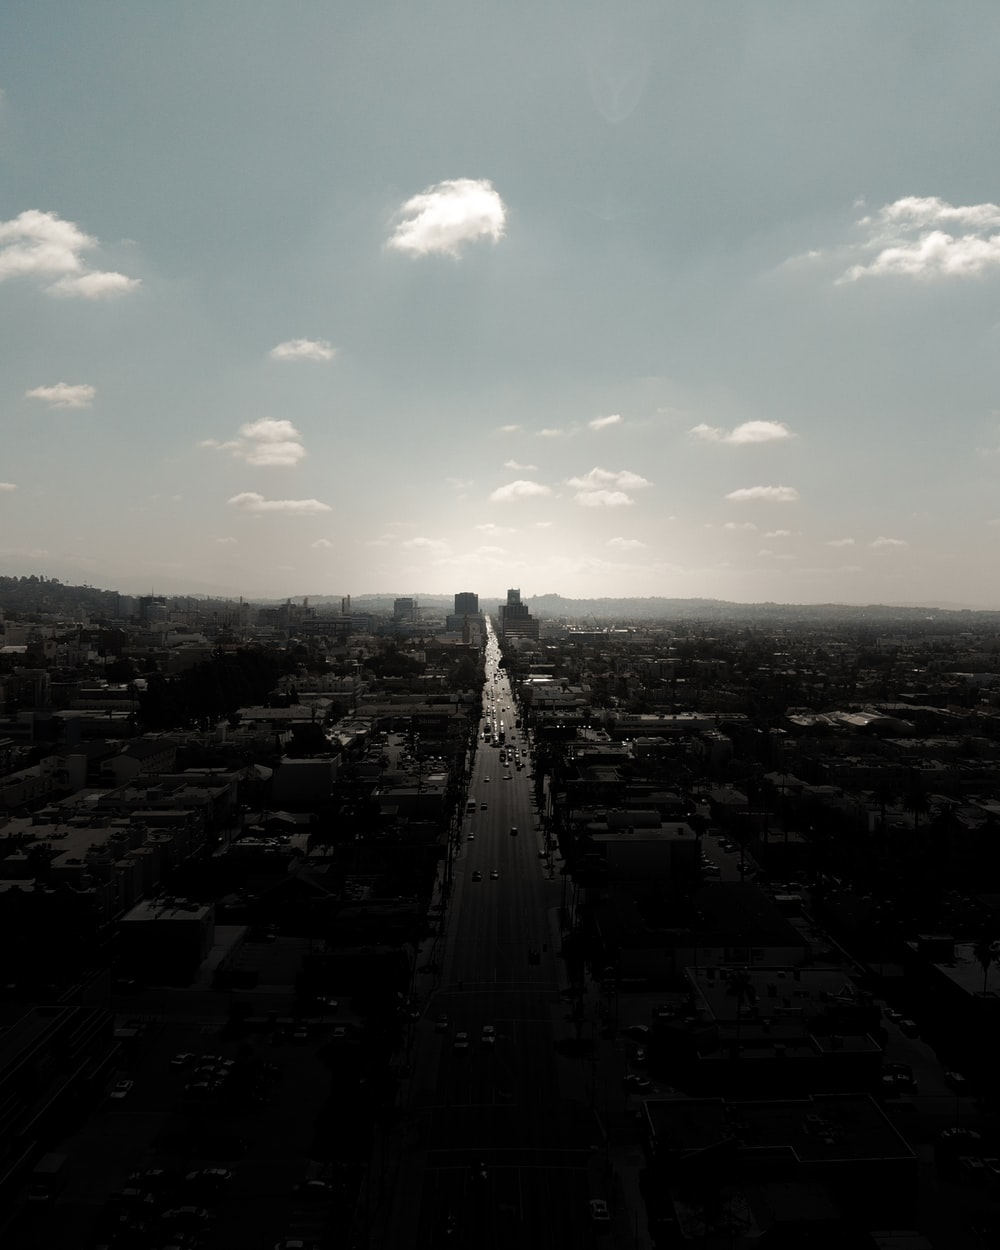 grayscale photography of city with high-rise buildings viewing road